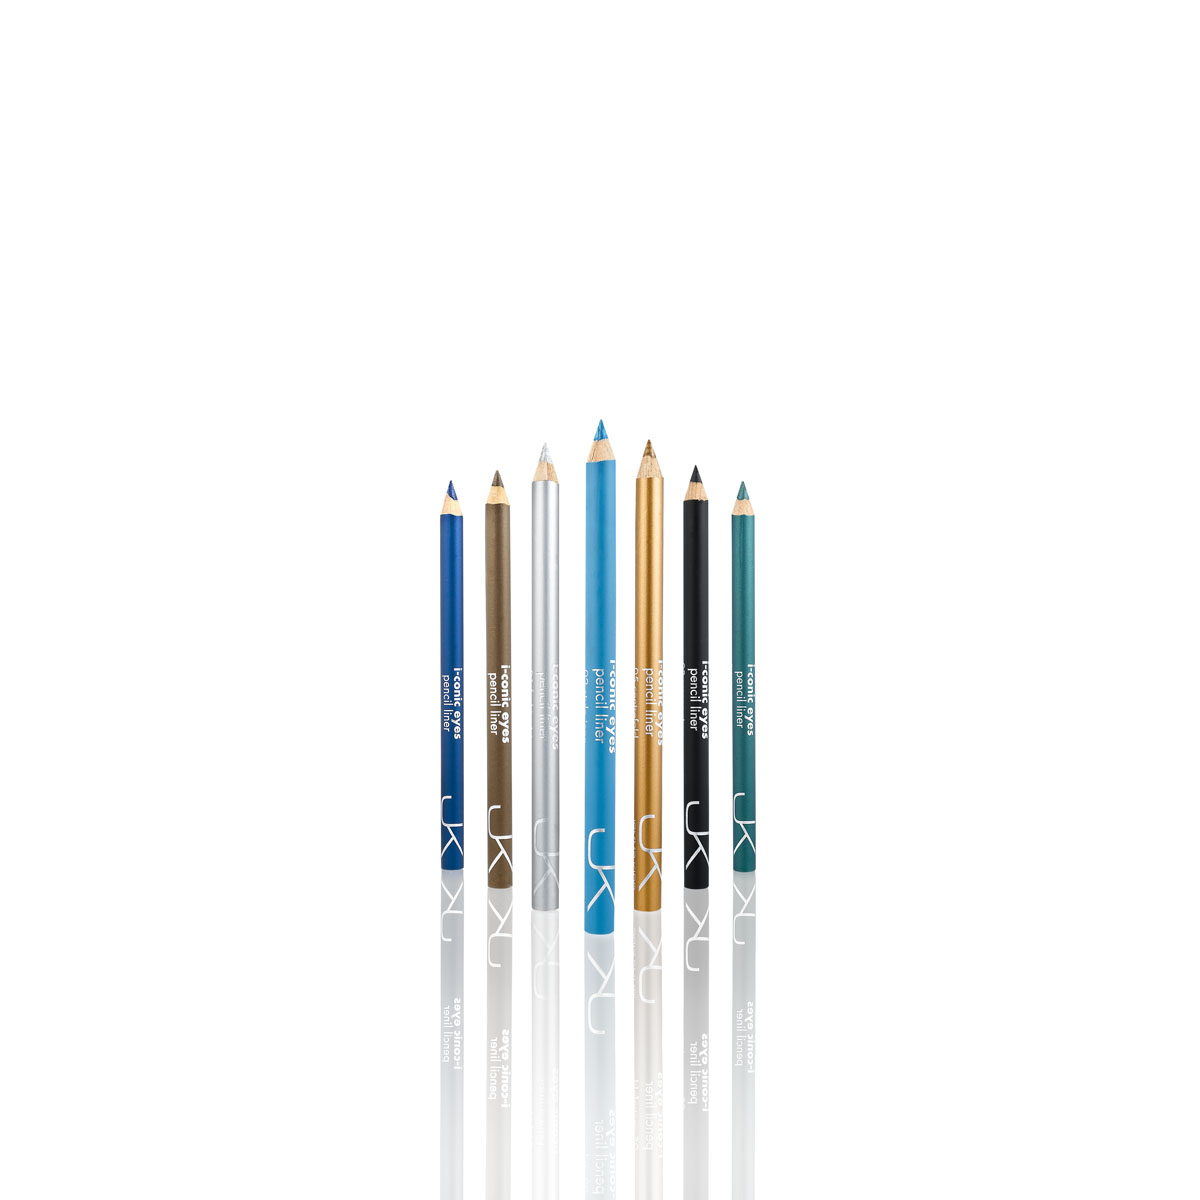 JK Jemma Kidd I-Conic Eyes Pencil Liner ($14) — comes with built-in sharpener.